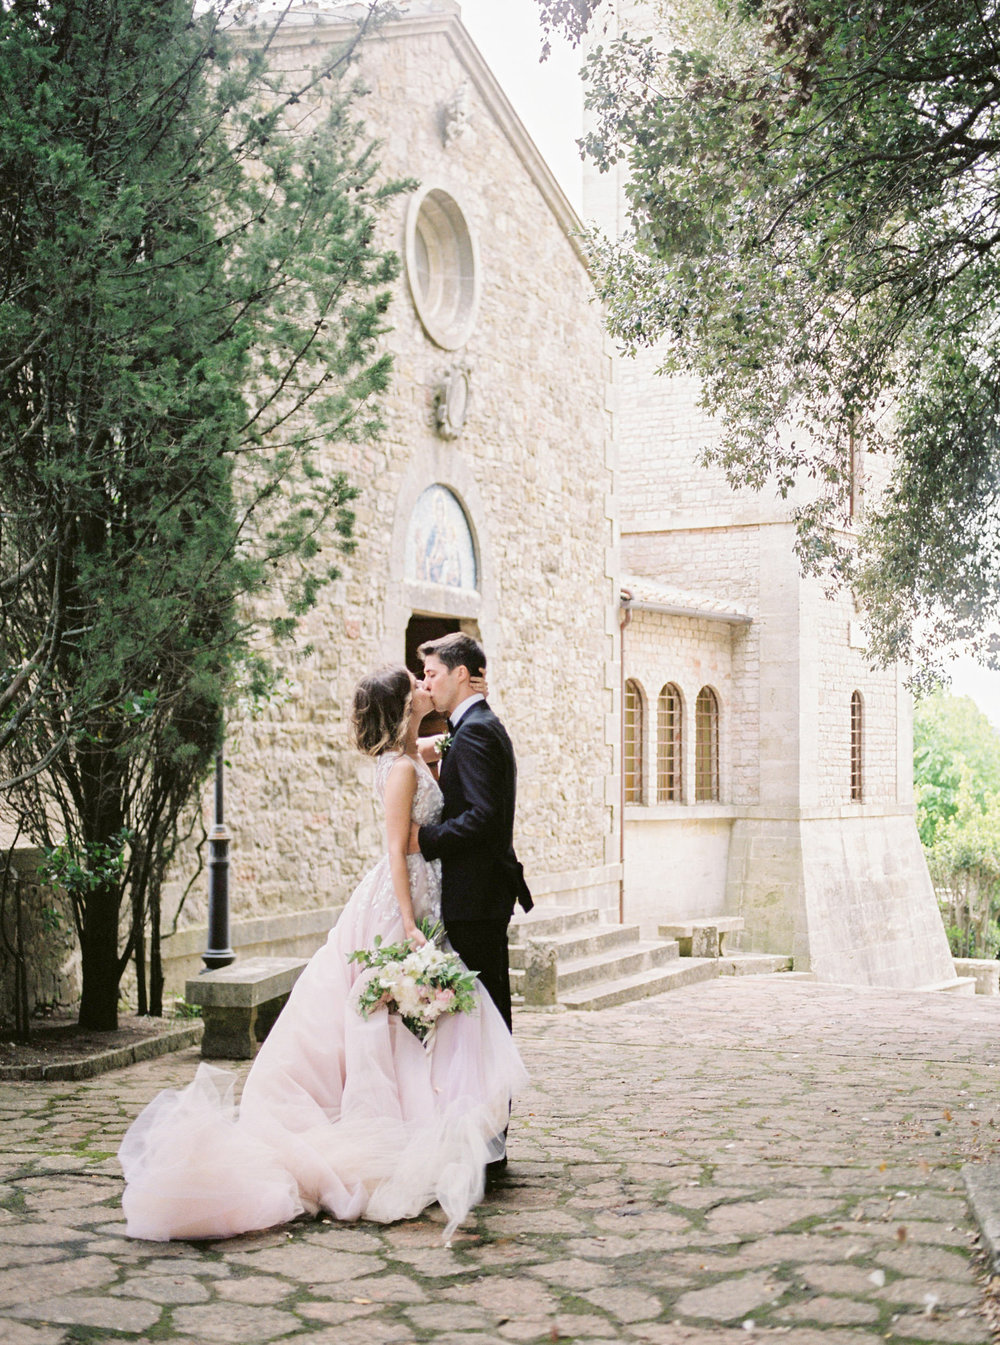 Once Wed Secluded Beauty of An Italian Destination Wedding, August 2017